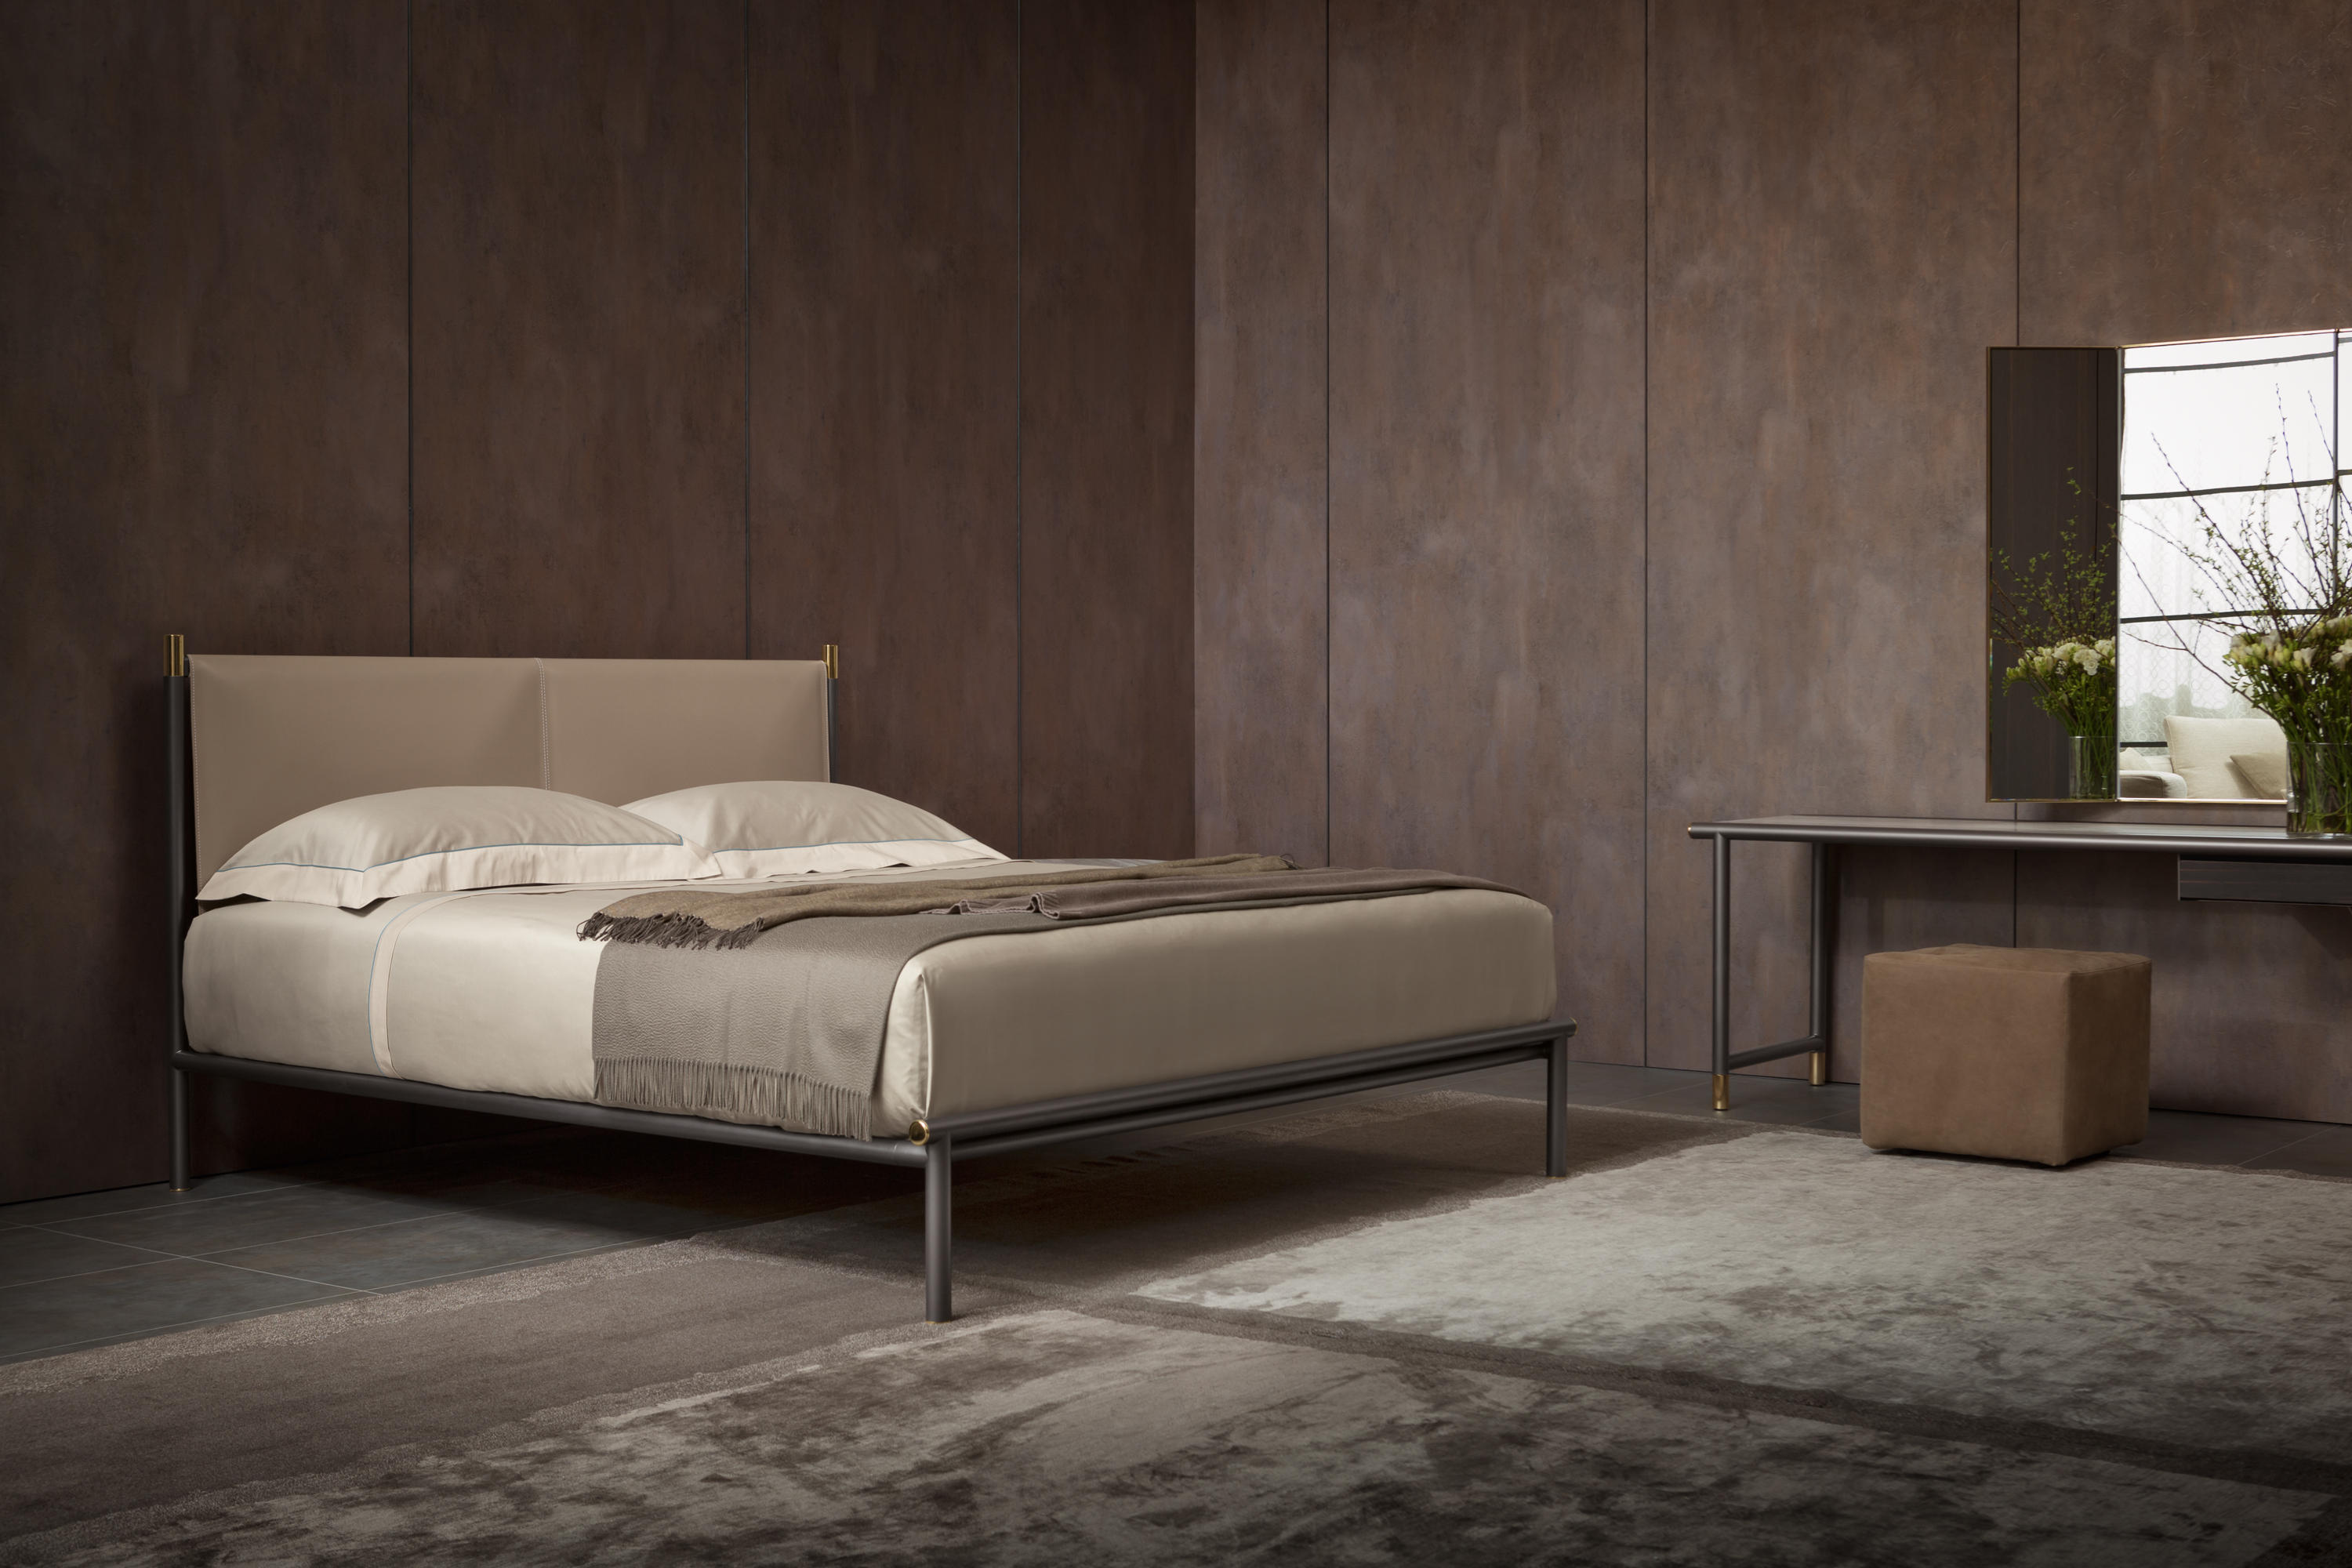 Iko Bed Double Beds From Flou Architonic